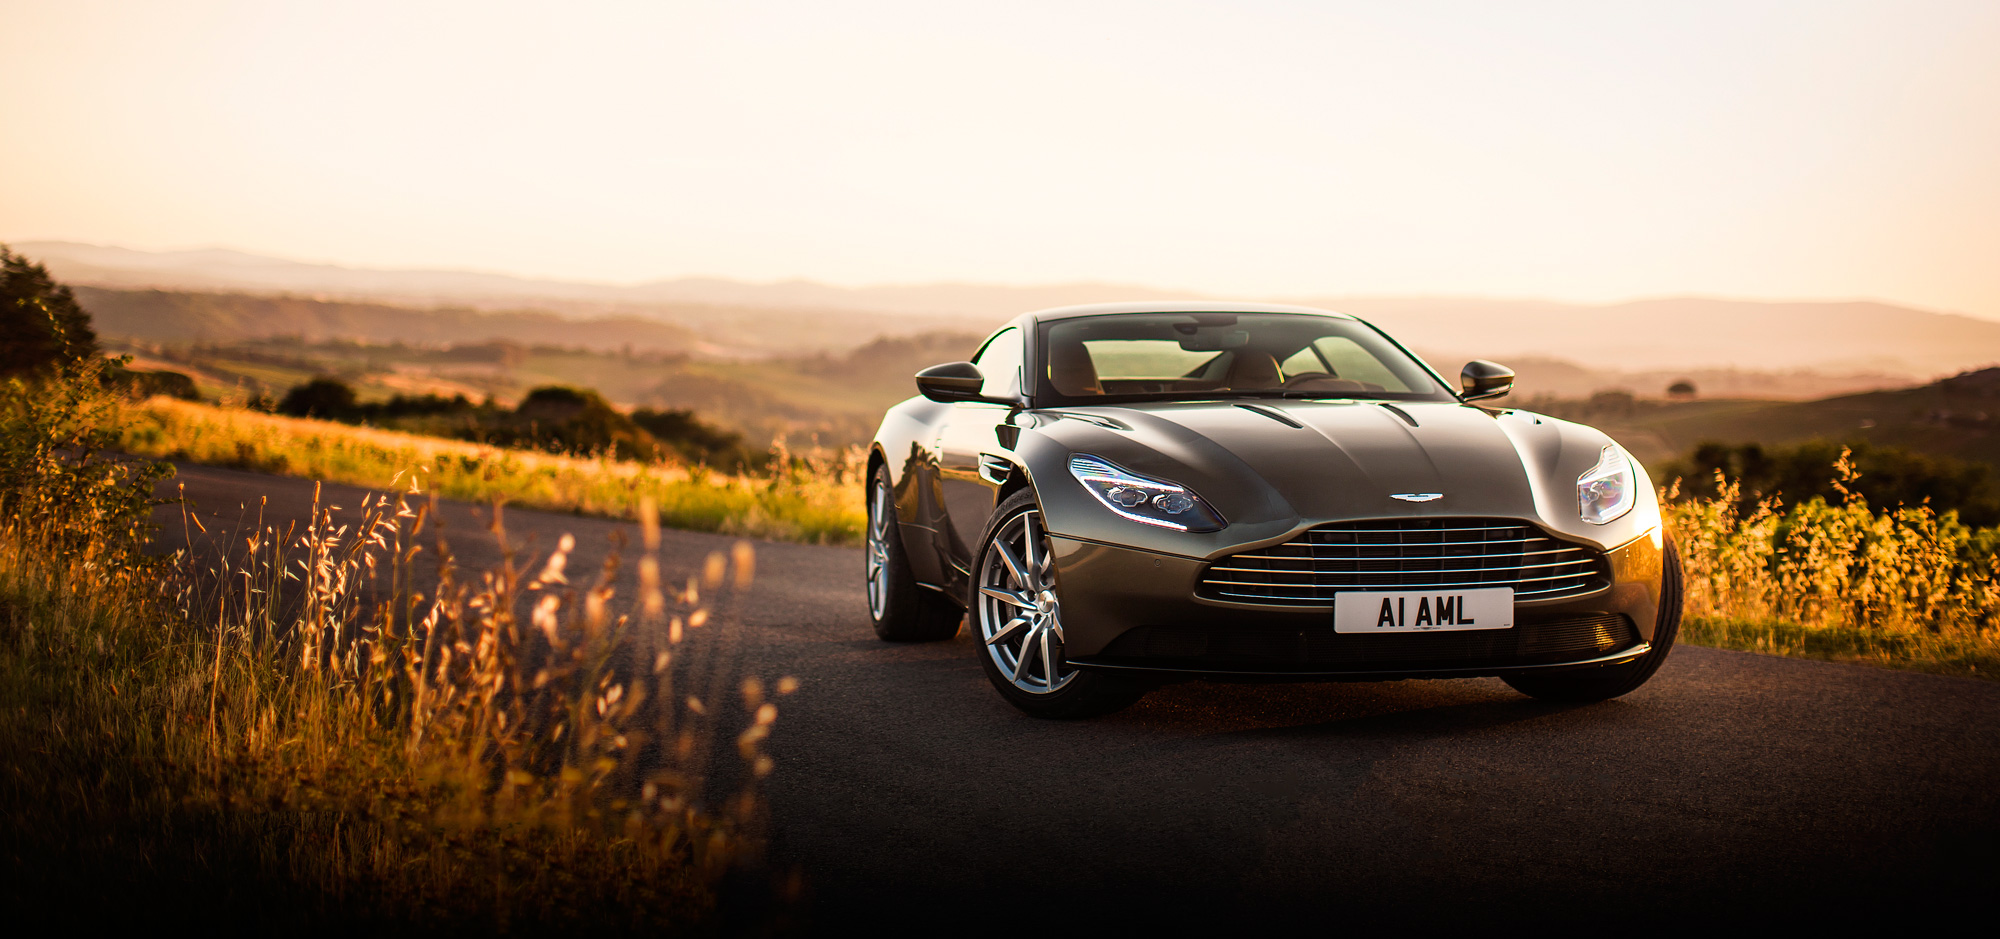 Nice wallpapers Aston Martin 2000x939px